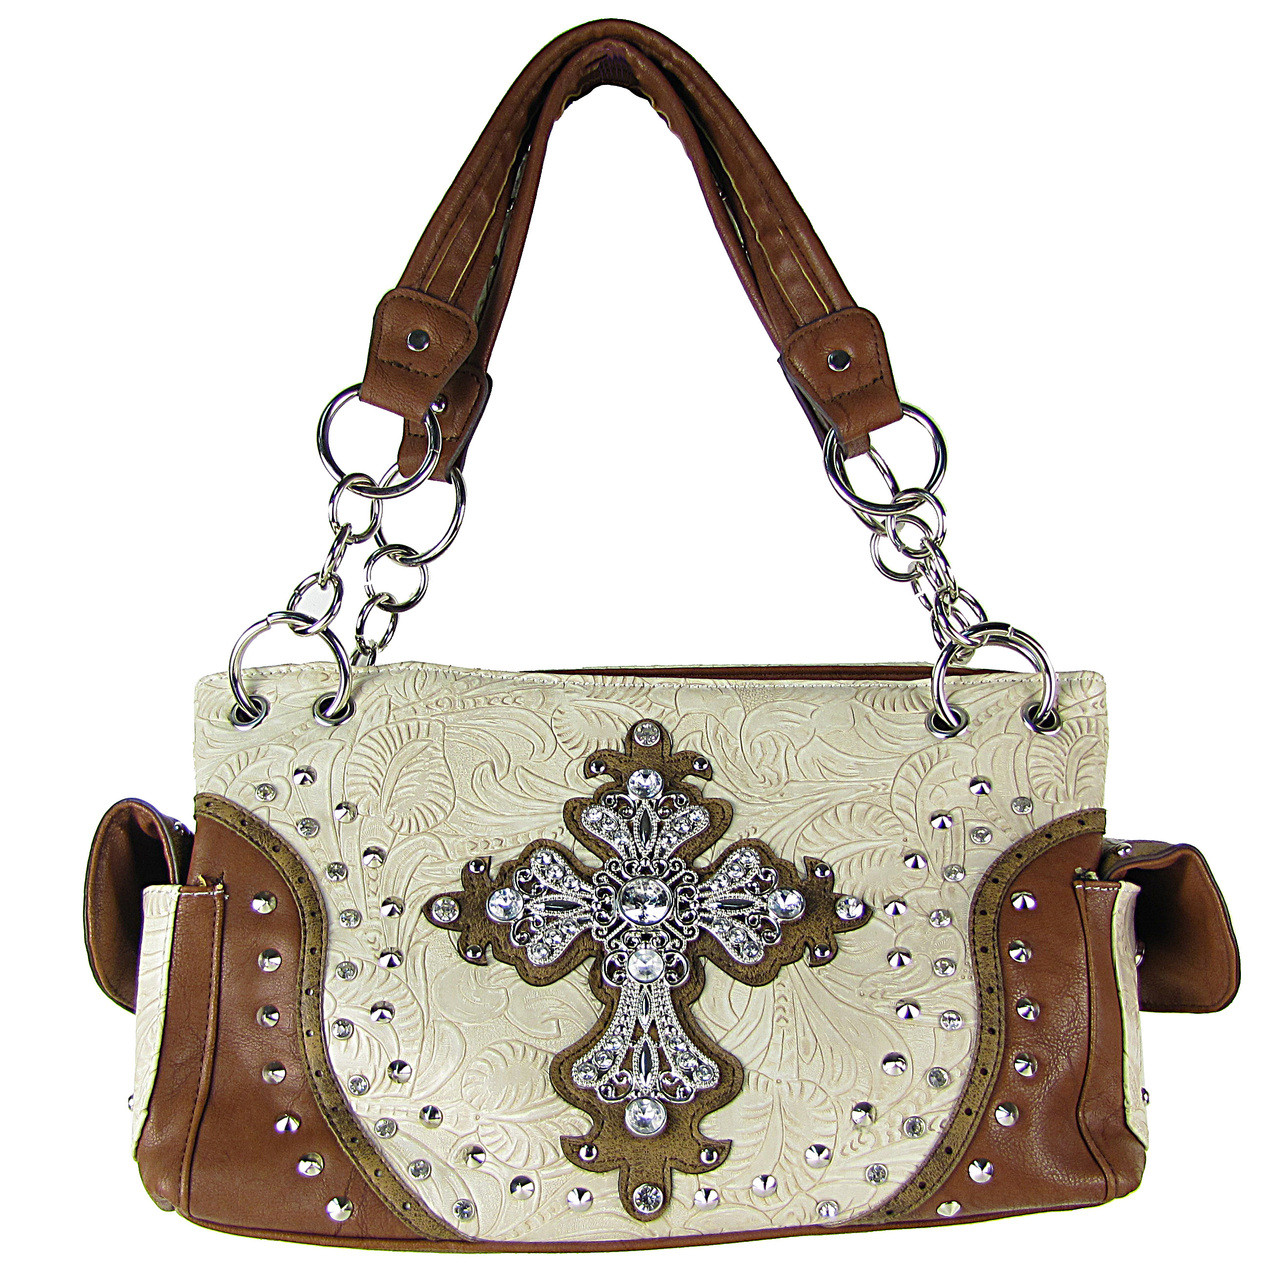 BEIGE STUDDED RHINESTONE CROSS TOOLING LOOK SHOULDER HANDBAG HB1-35LCR-1BEI